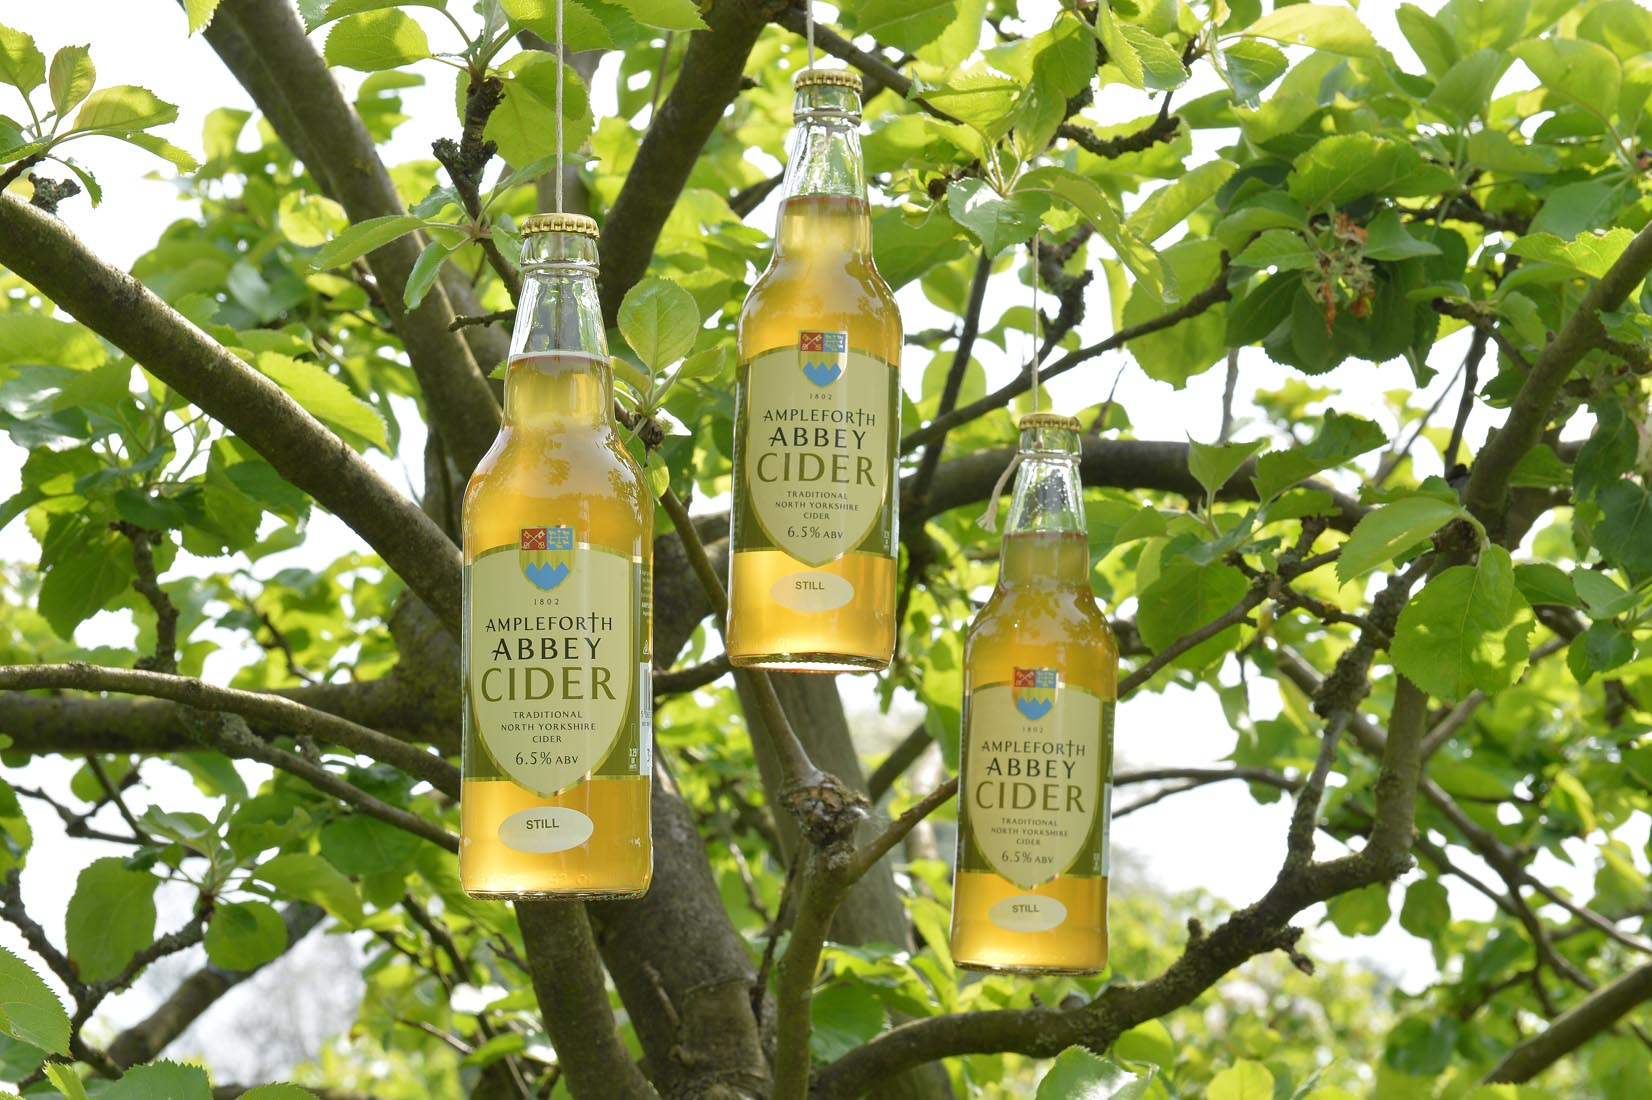 Ampleforth Cider